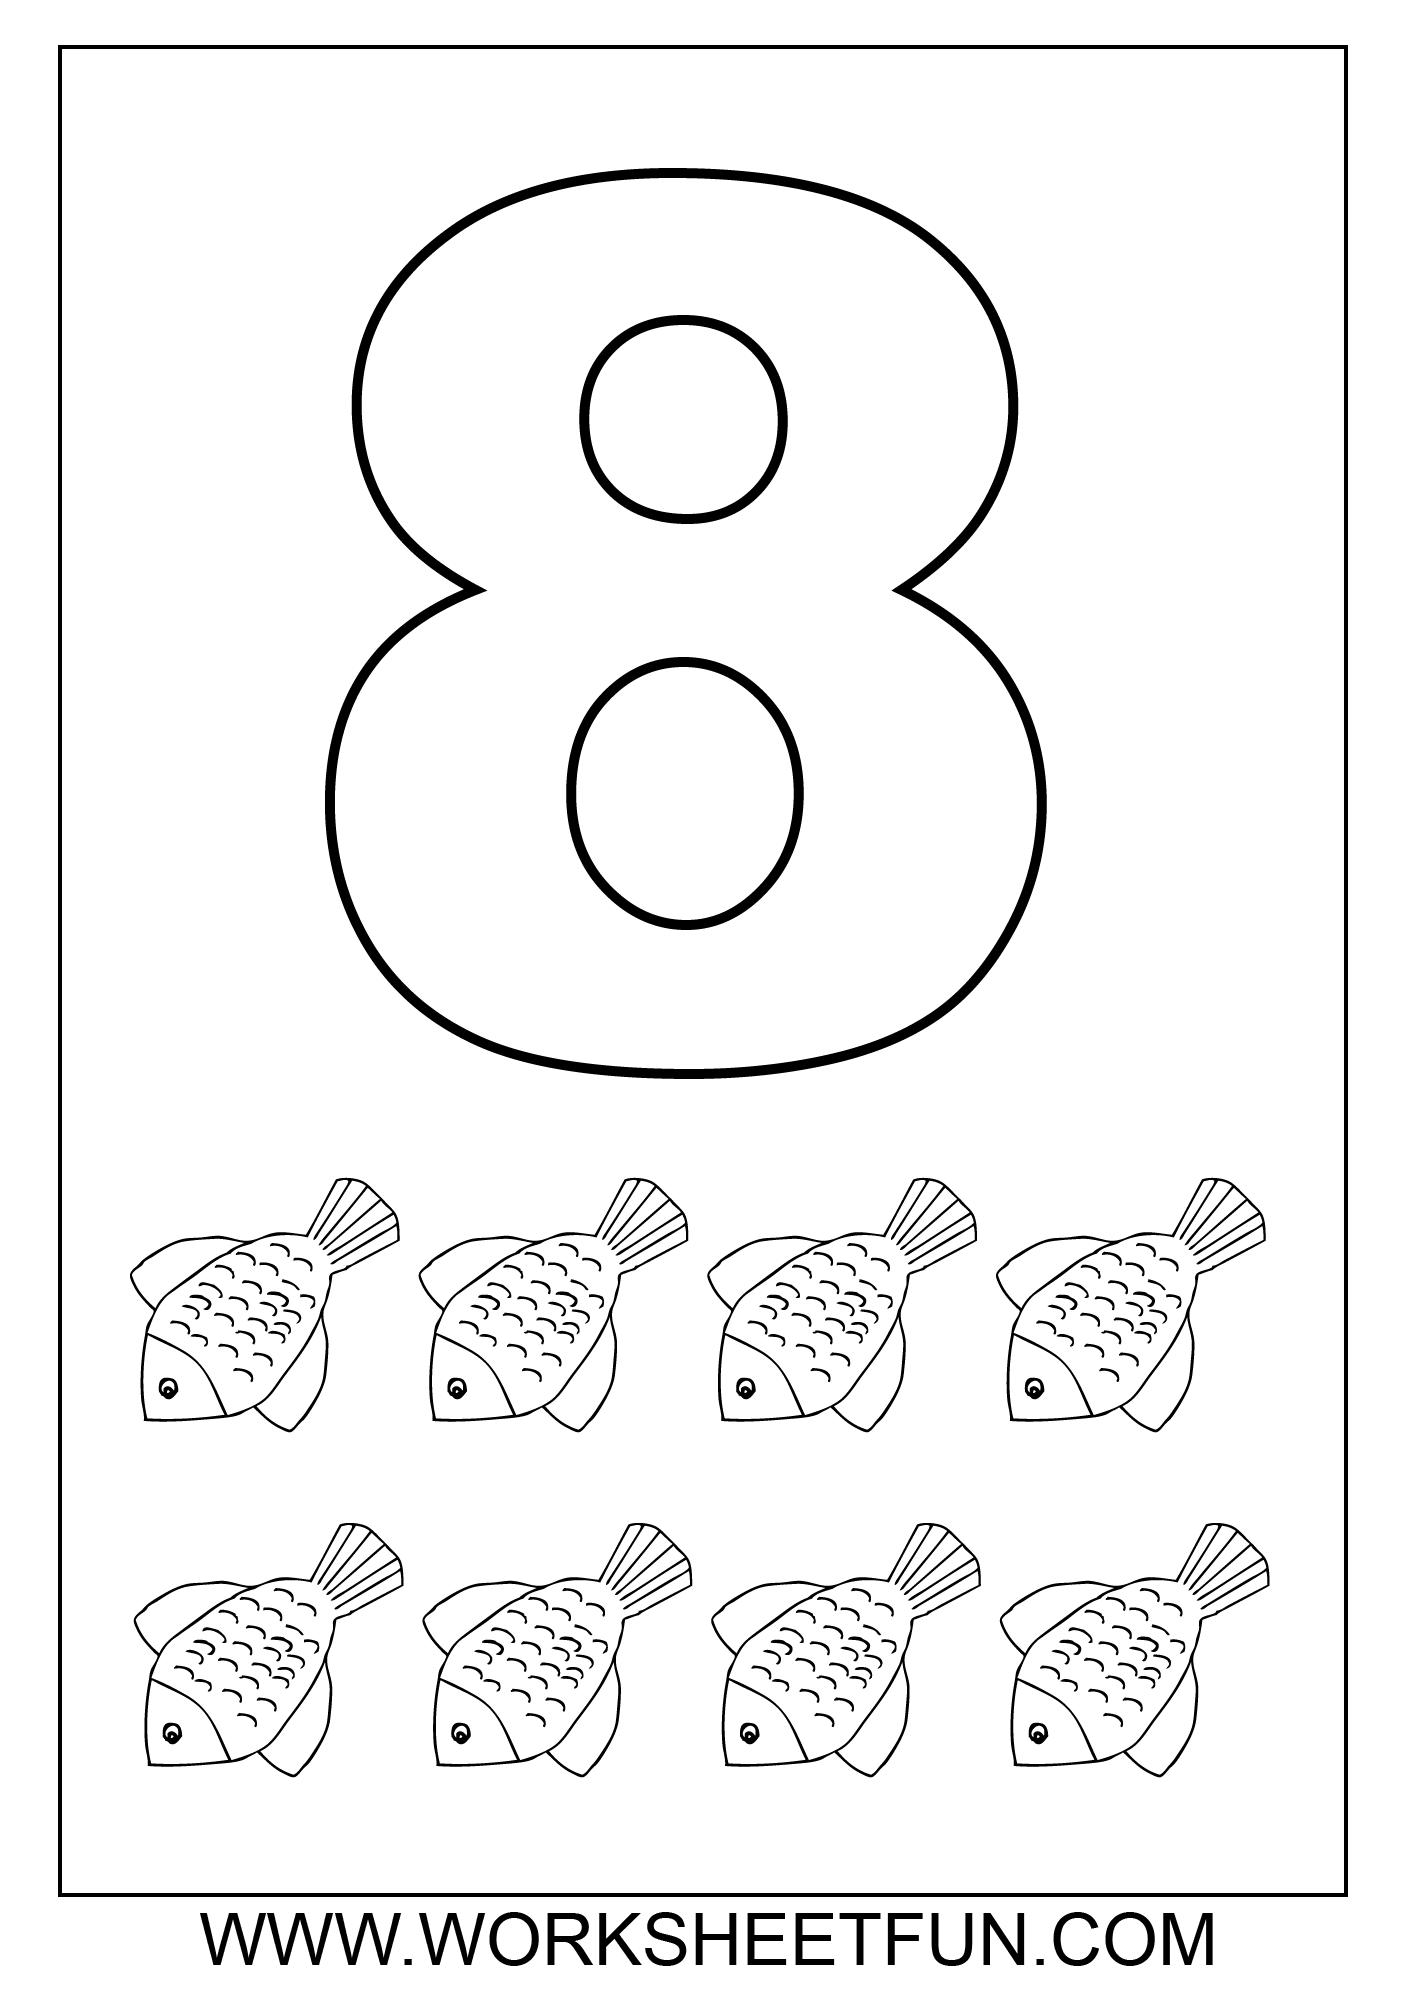 coloring pages numbers hard color by number pages color by number coloring pages coloring numbers